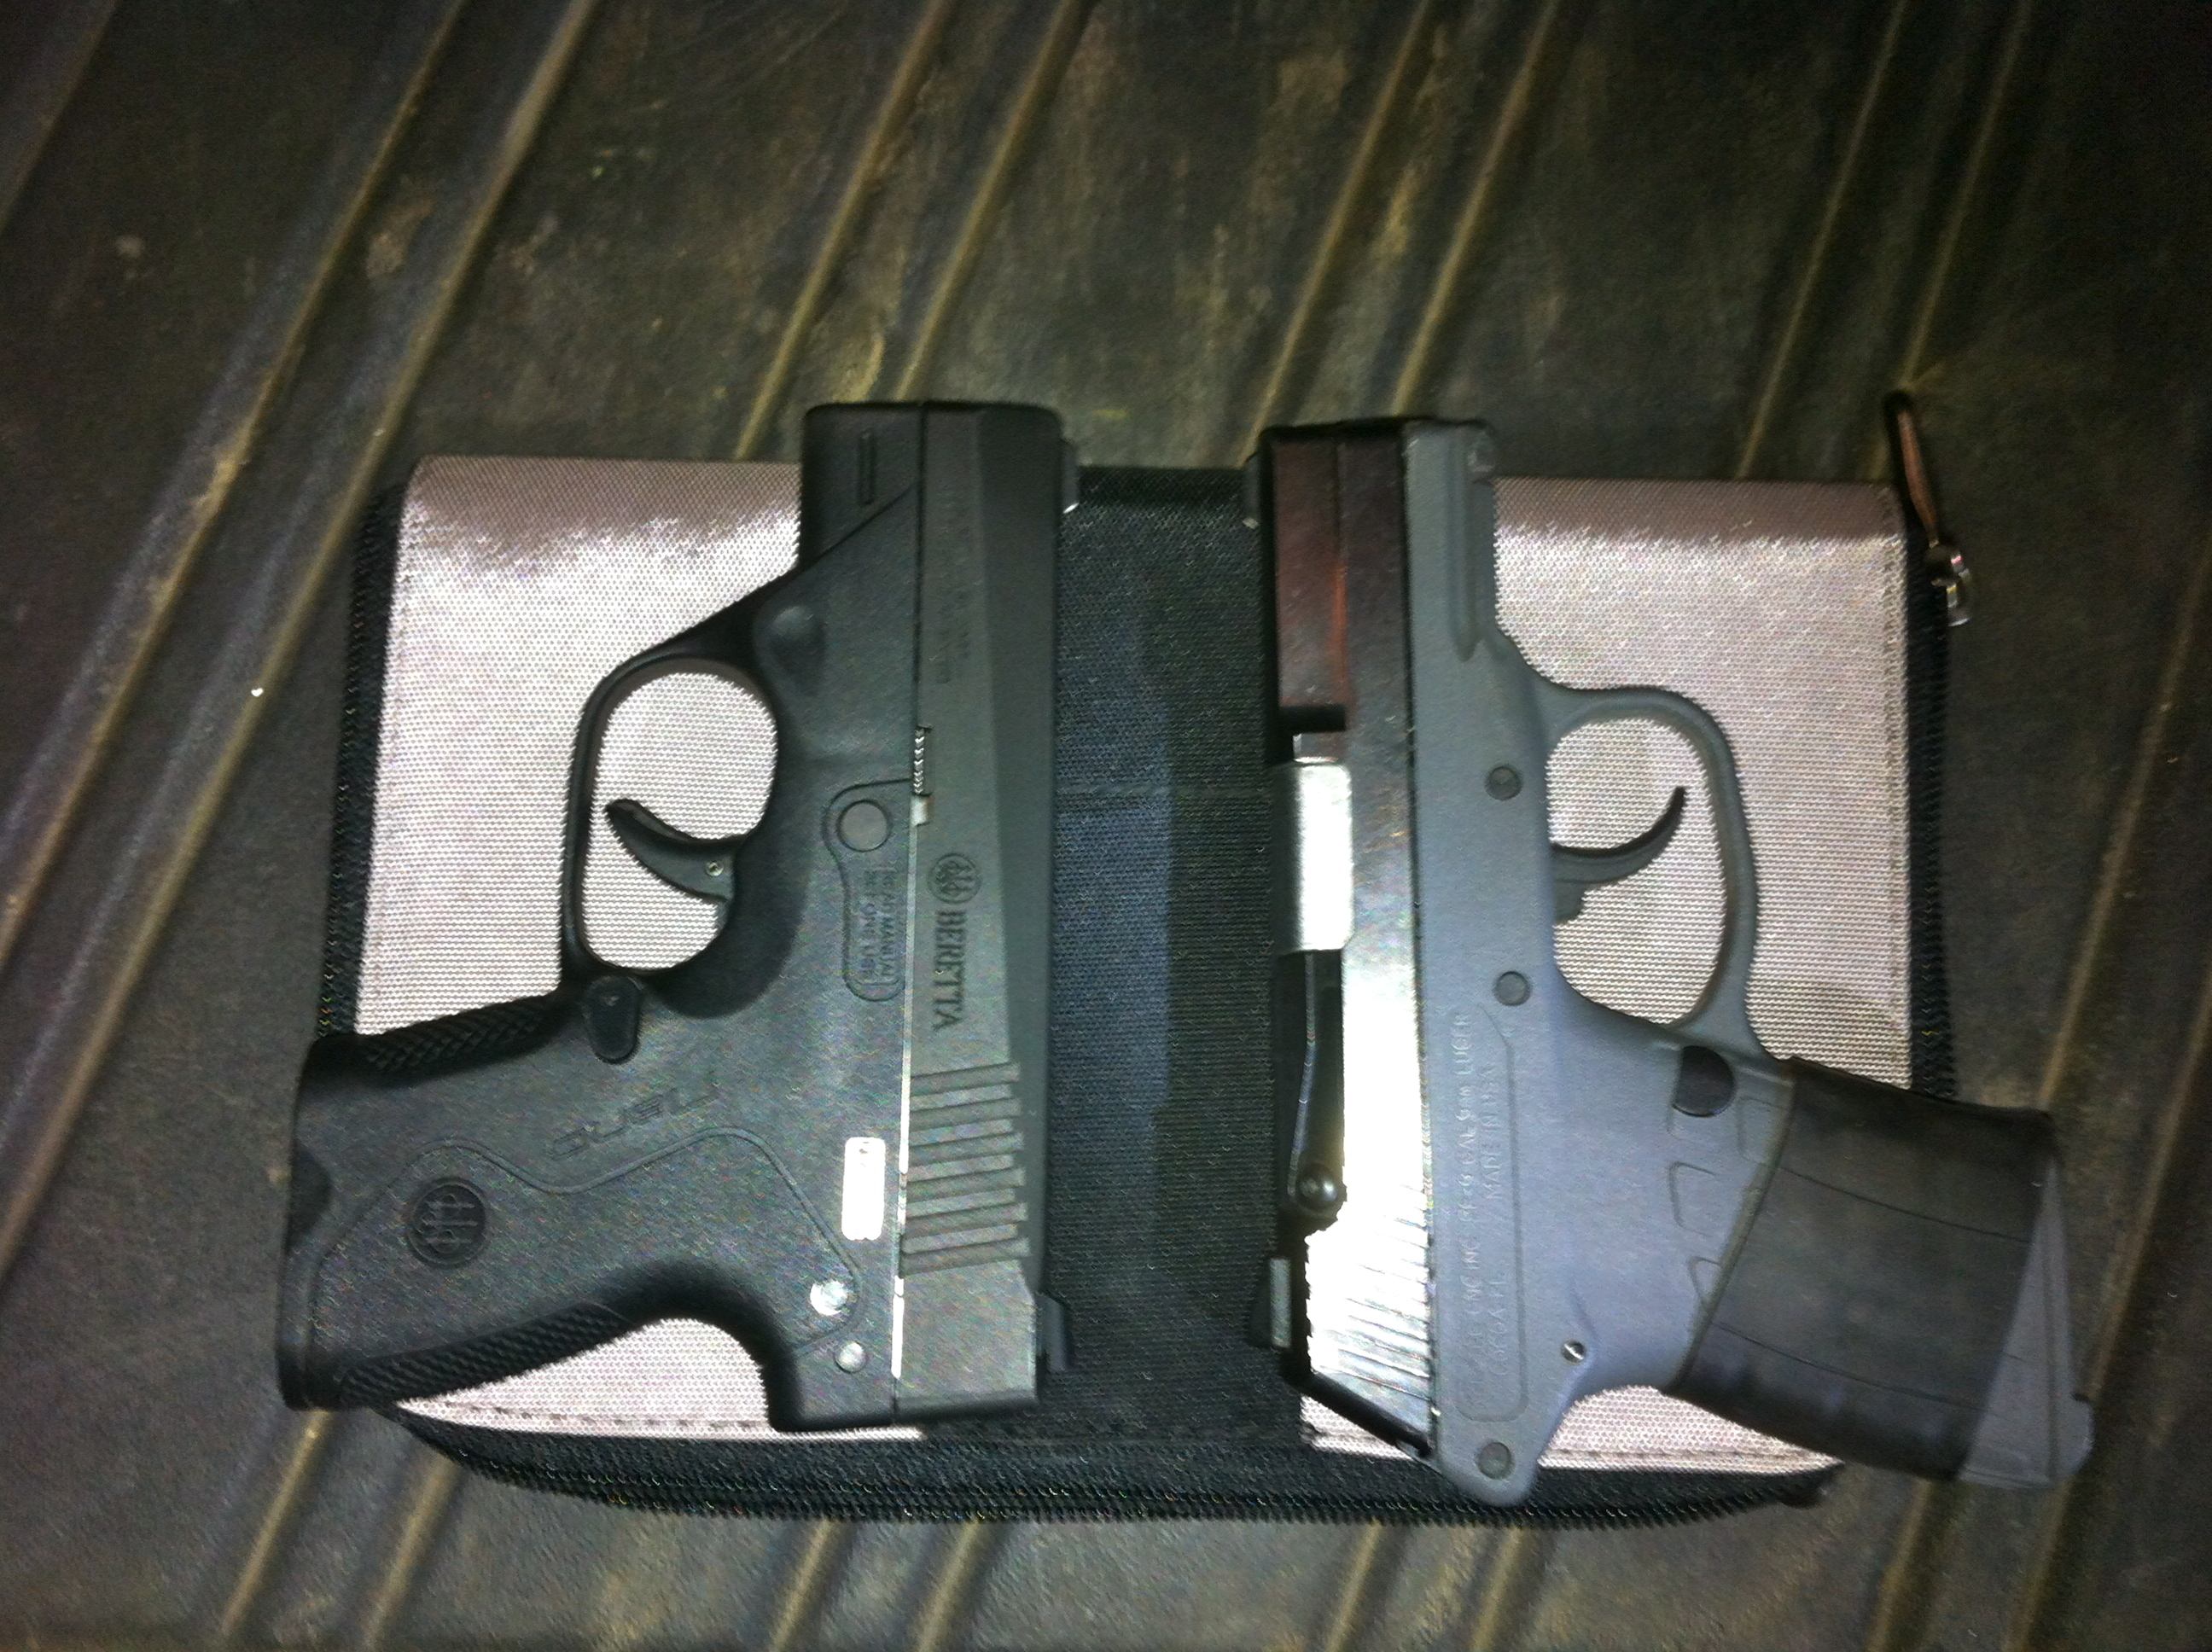 Nano side by side with PF9